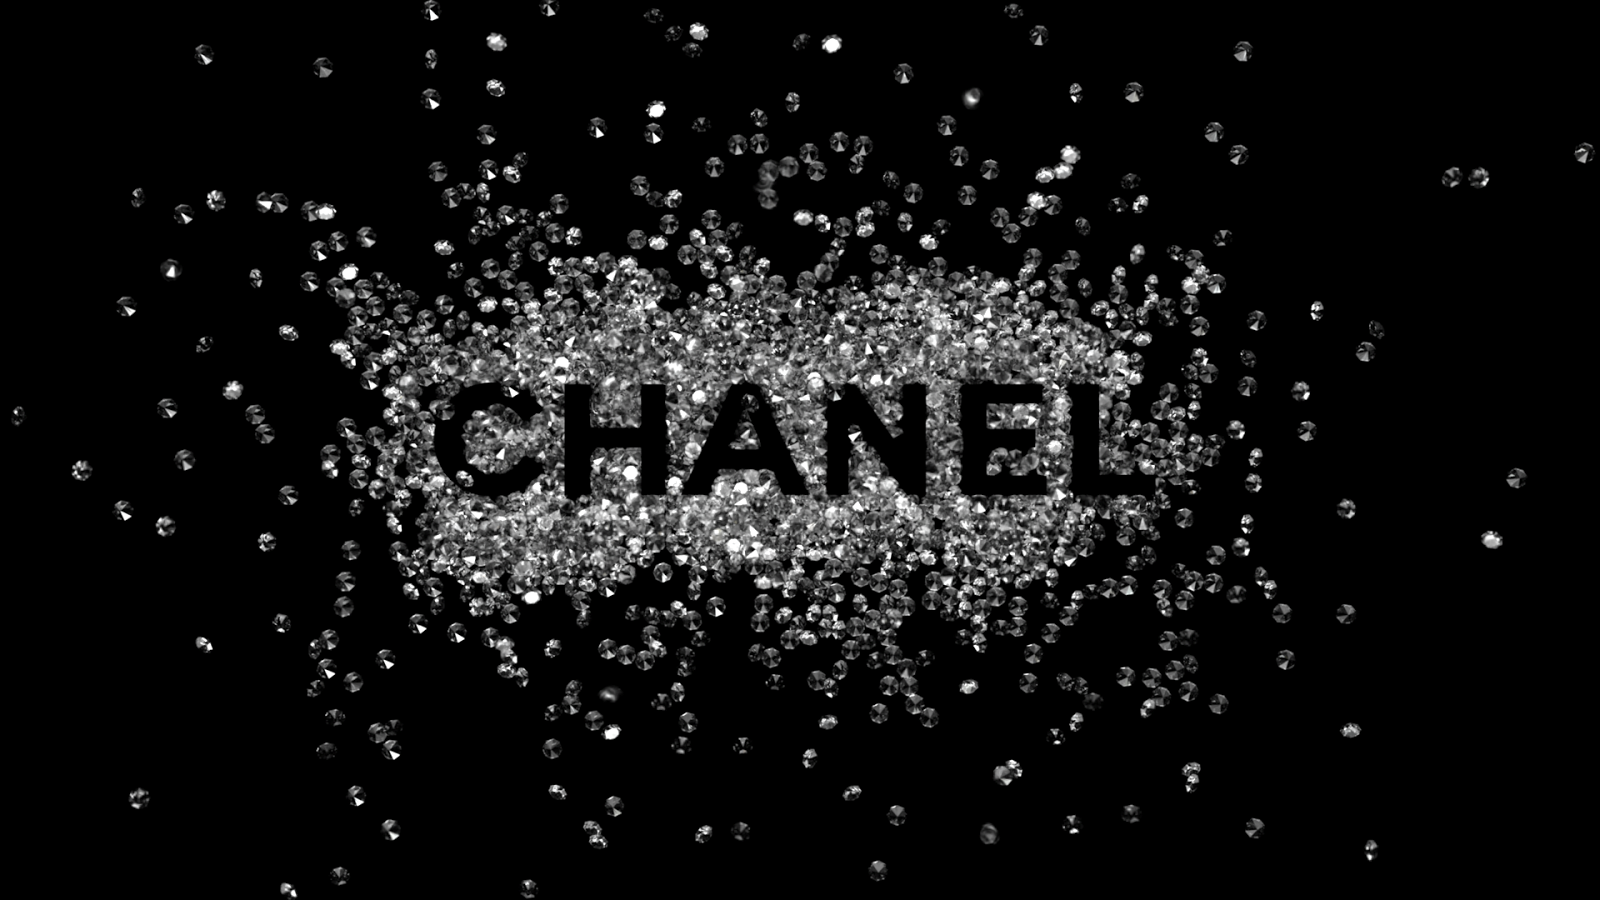 Iphone wallpaper tumblr chanel - Wallpapers For Chanel Logo Wallpaper